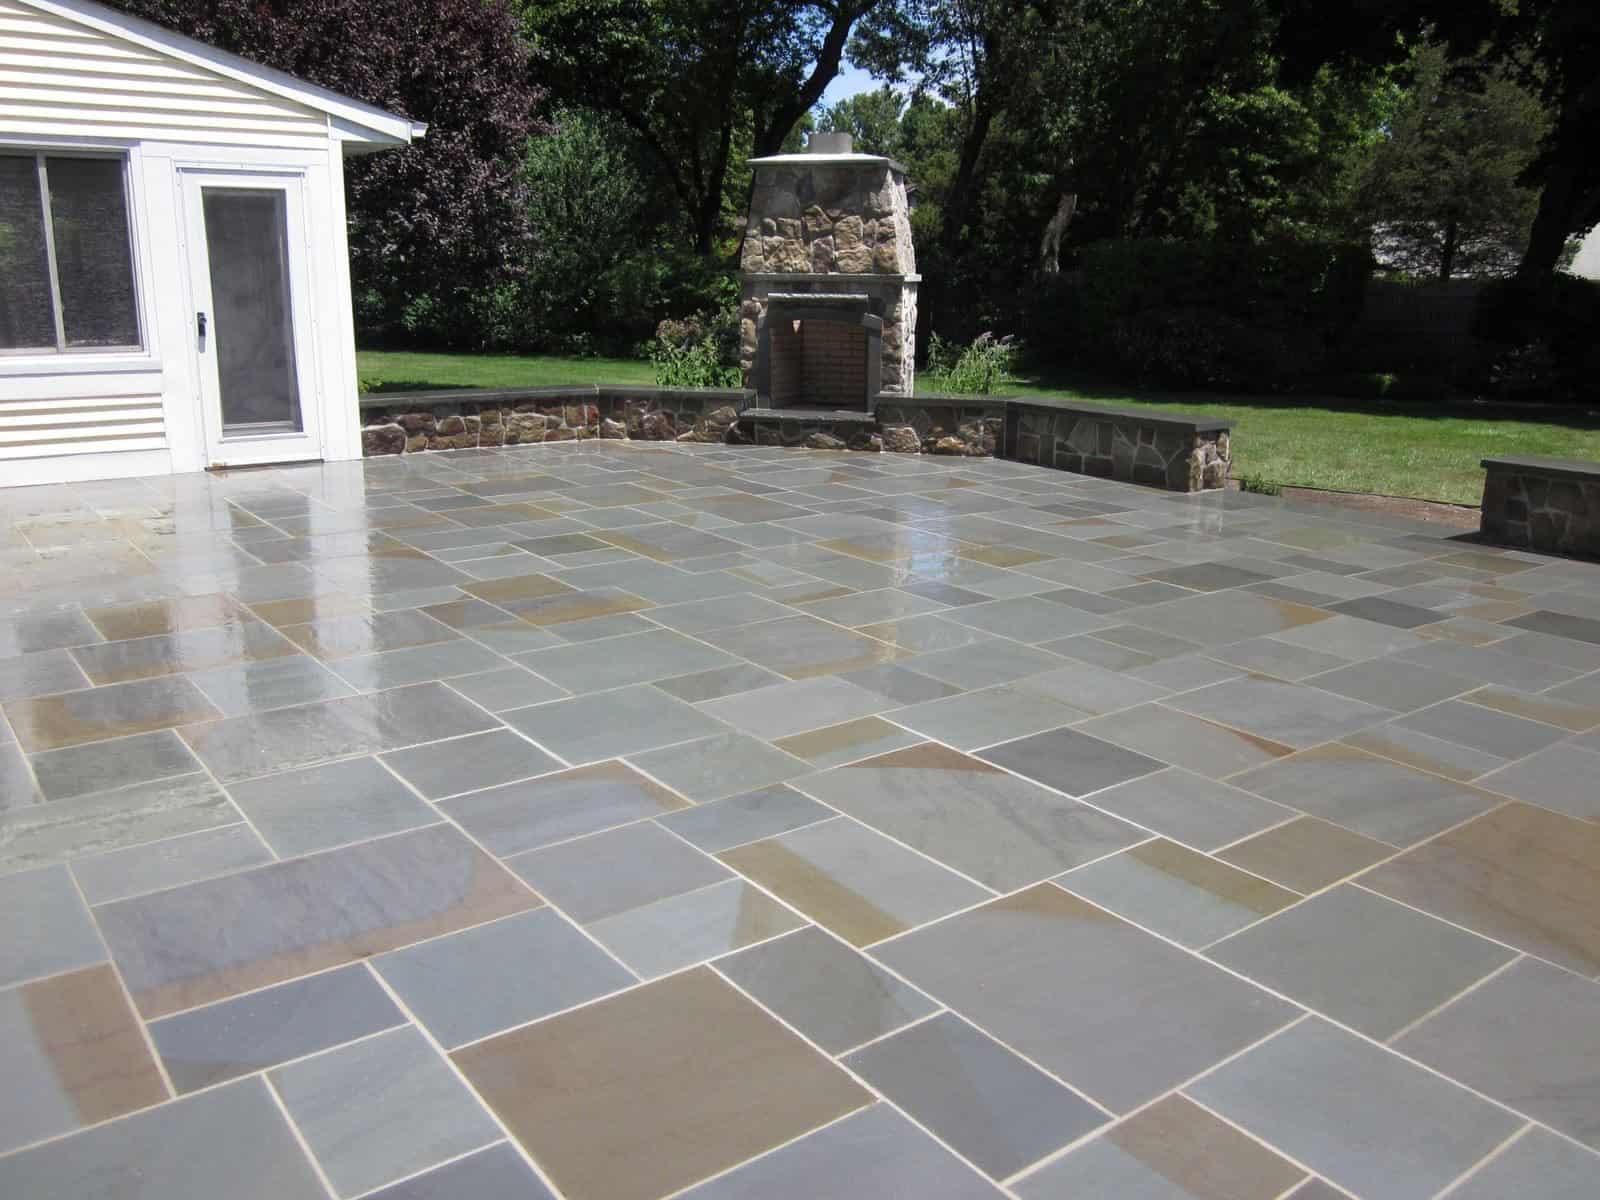 Natural Stone Patio   New York State Bluestone Patio   Random Pattern With  Joints   Huntington